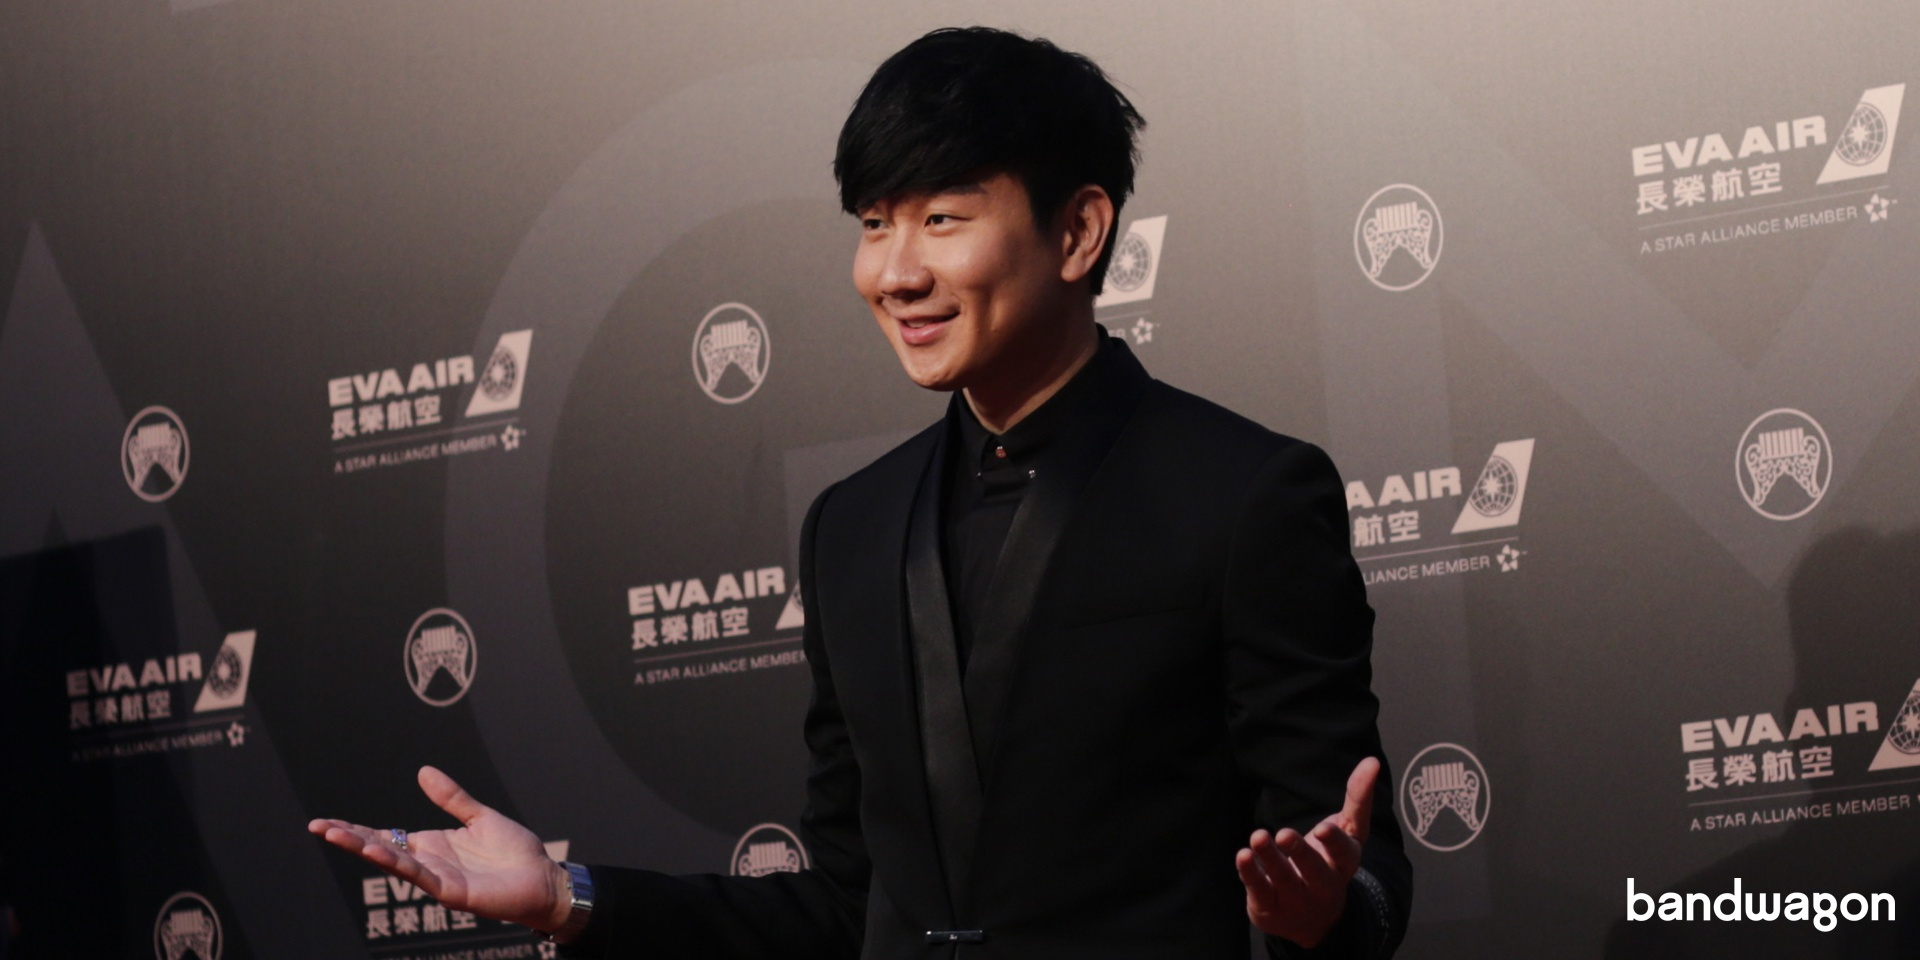 JJ Lin goes home empty-handed at 29th Golden Melody Awards despite six nominations